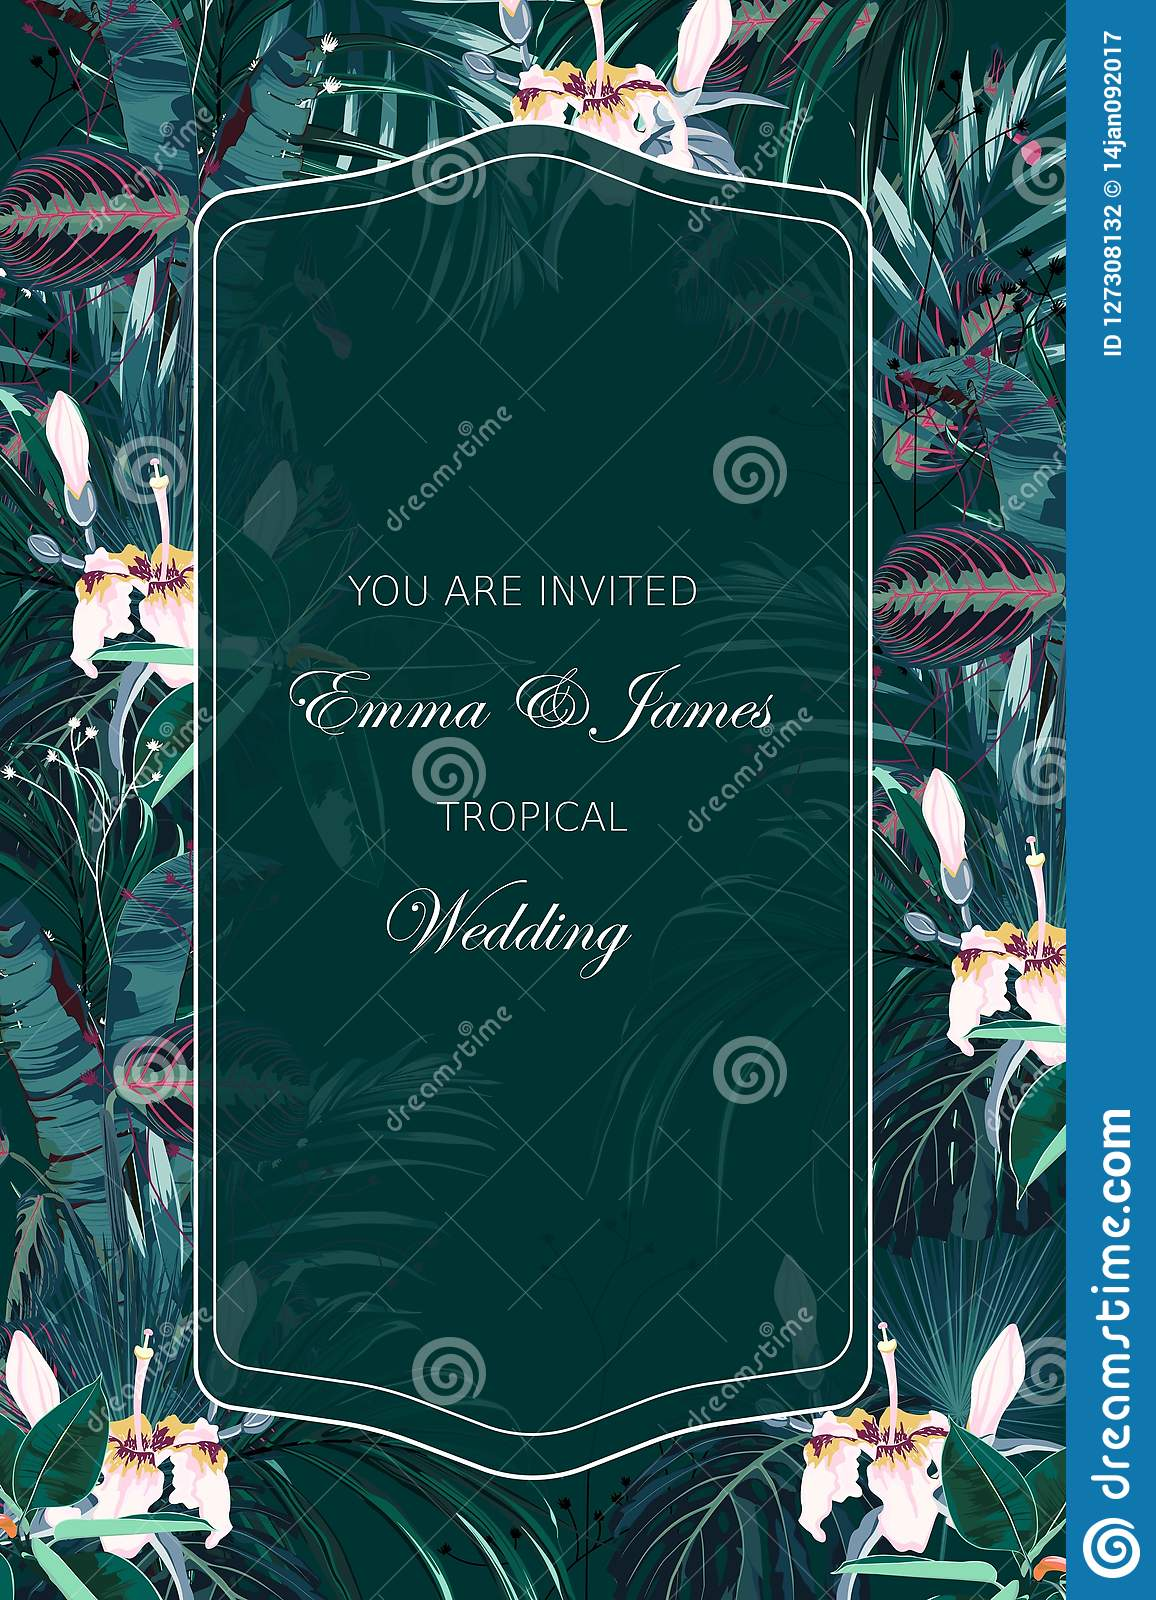 Emerald Tropical Wedding Invitation Greenery Greeting Card